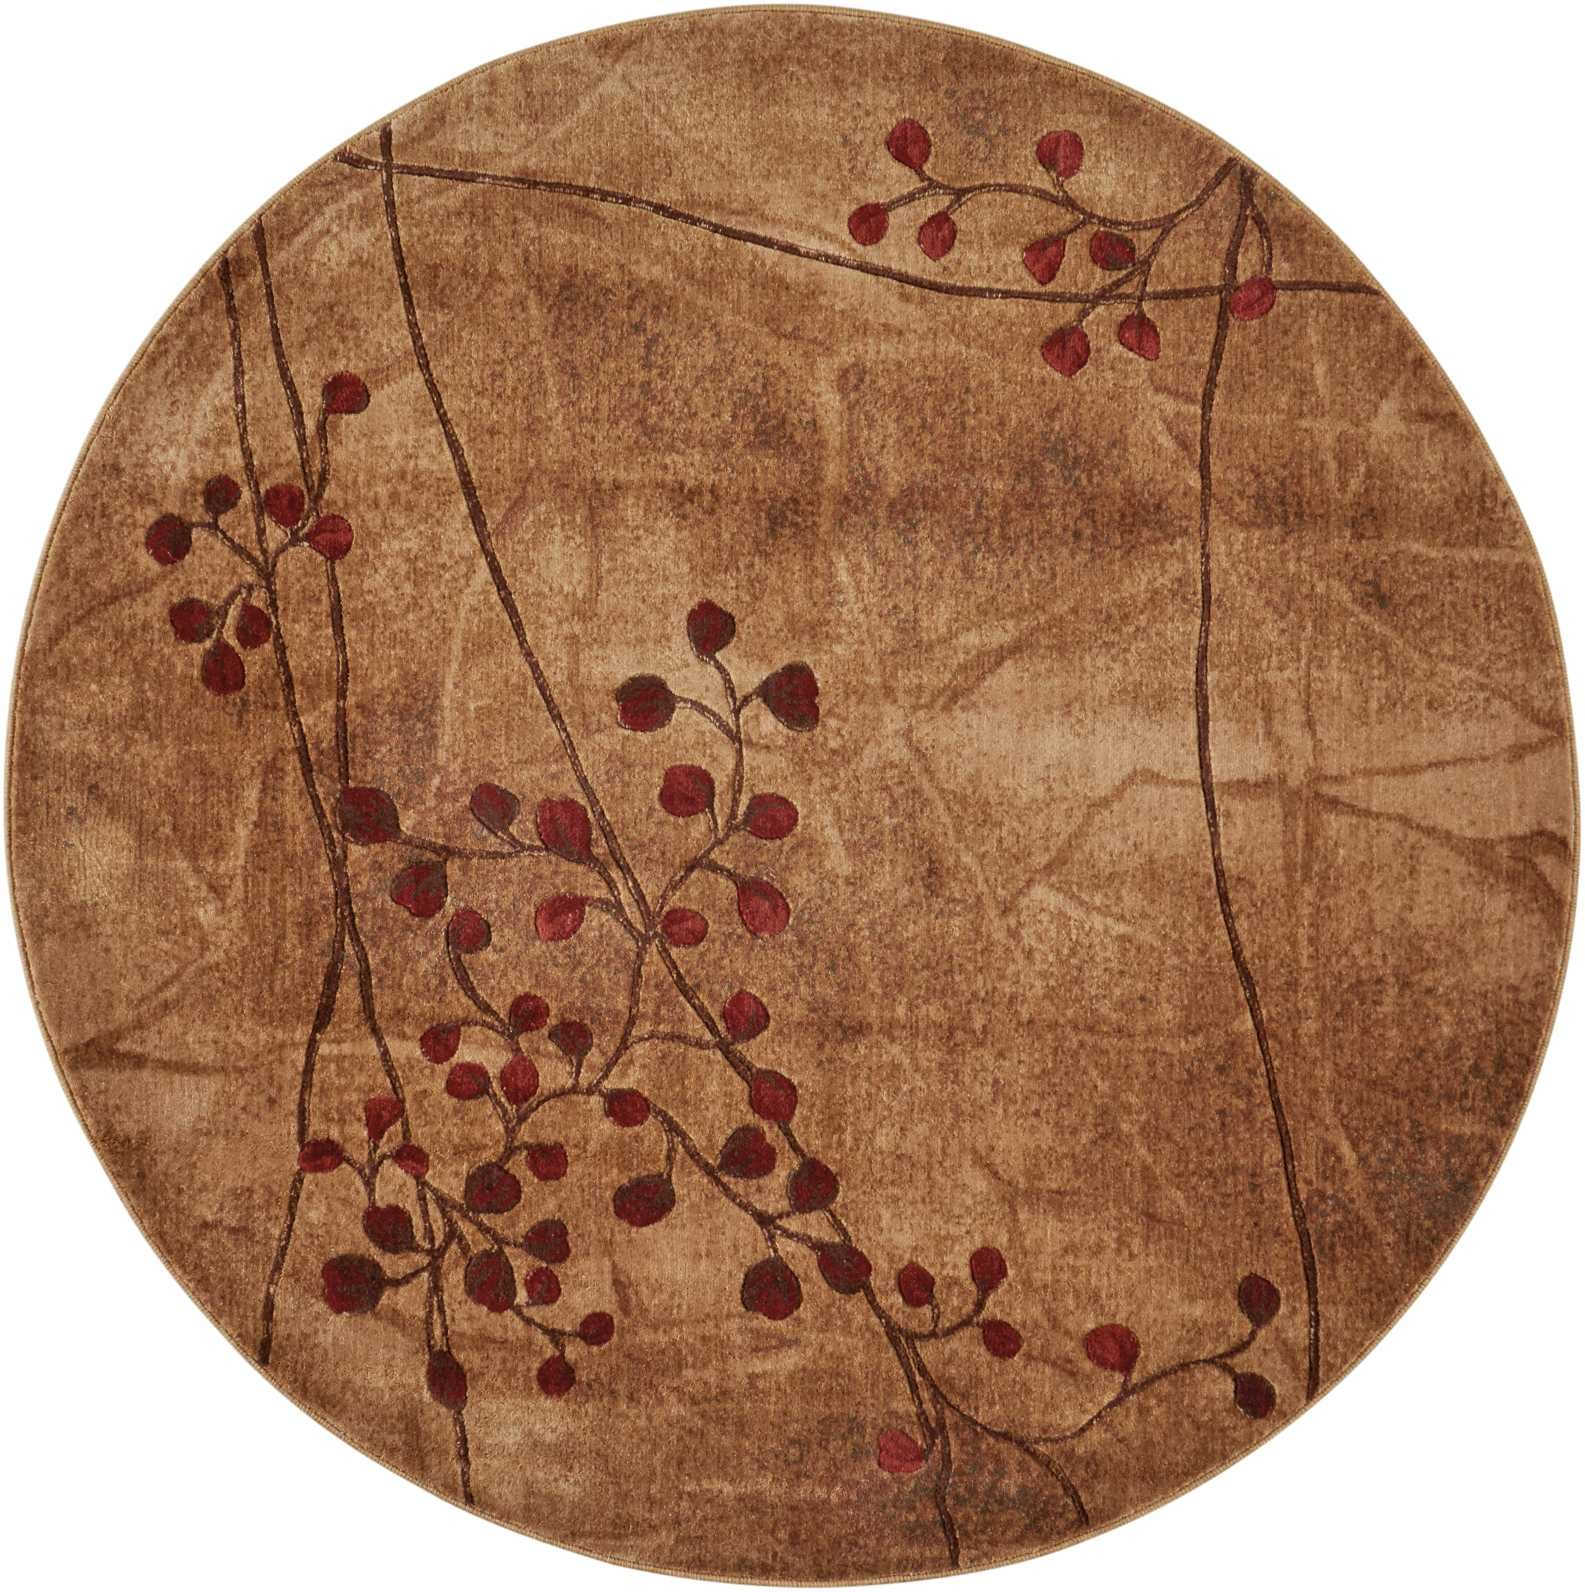 Nourison Somerset (ST74) Latte Round Area Rug, 5-Feet 6-Inches by 5-Feet 6-Inches (5'6'' x 5'6'') by Nourison (Image #3)